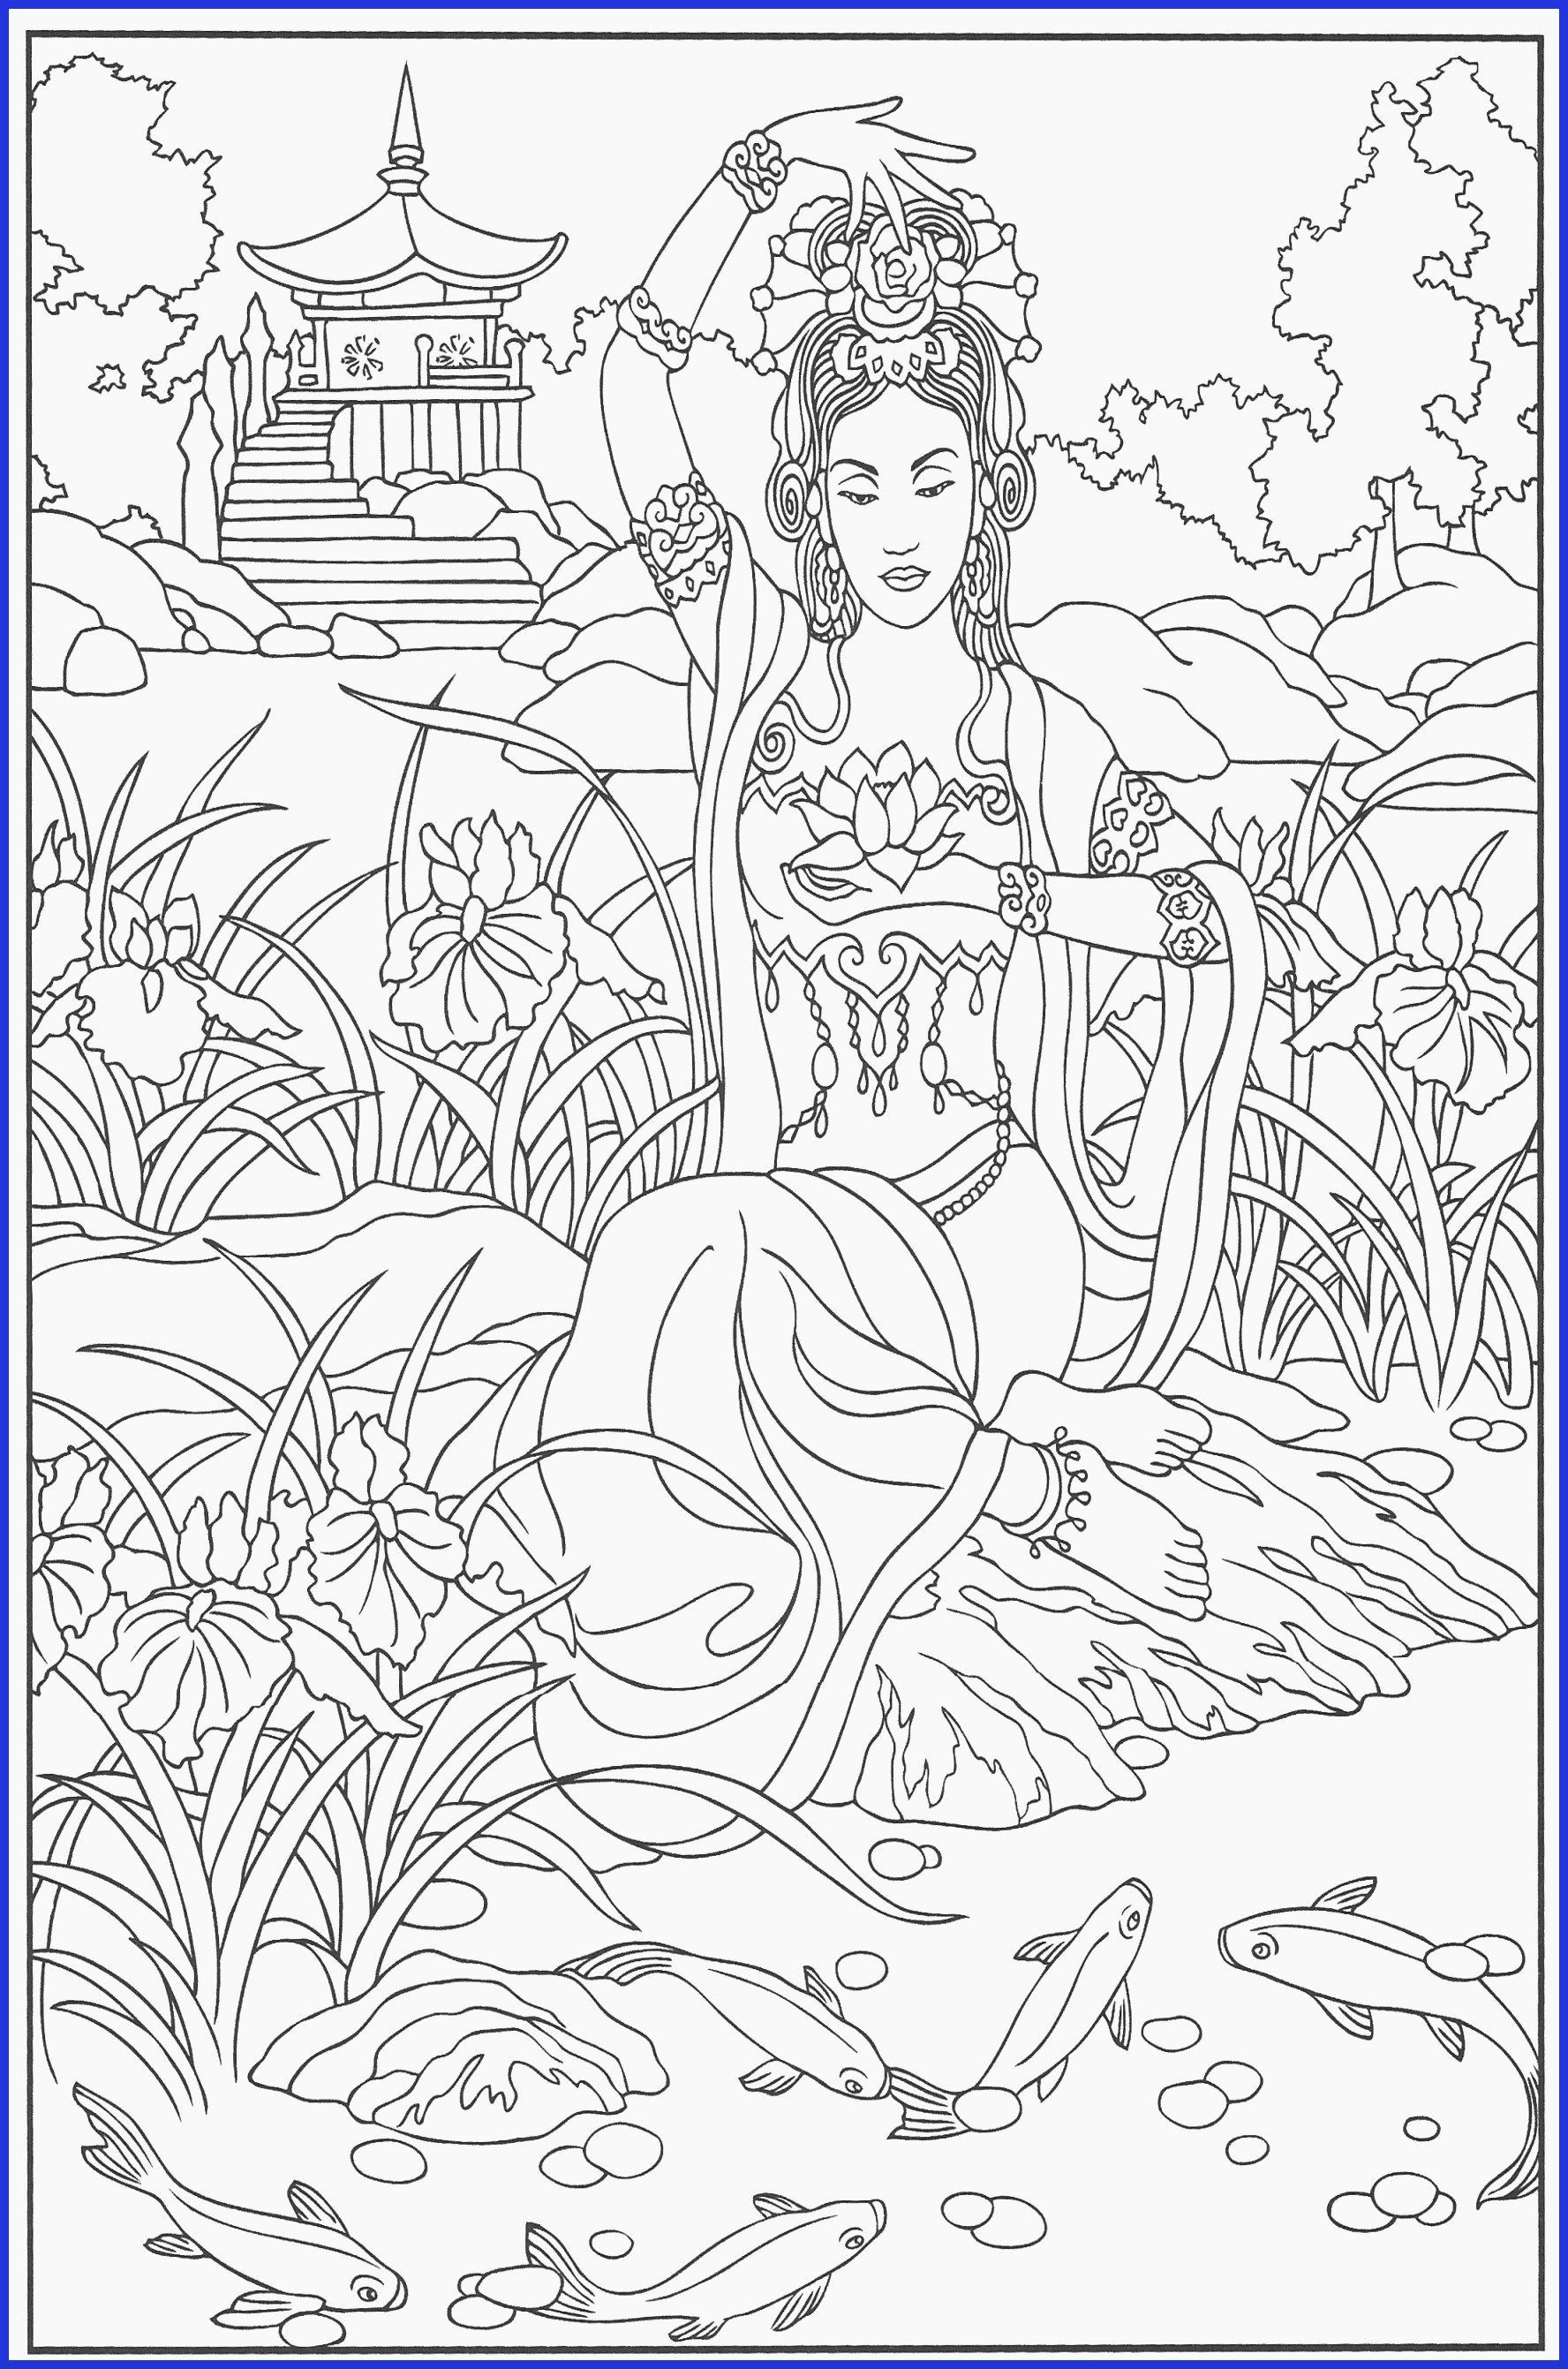 Military Coloring Pages For Adults In 2020 Animal Coloring Pages Coloring Pages Coloring Books